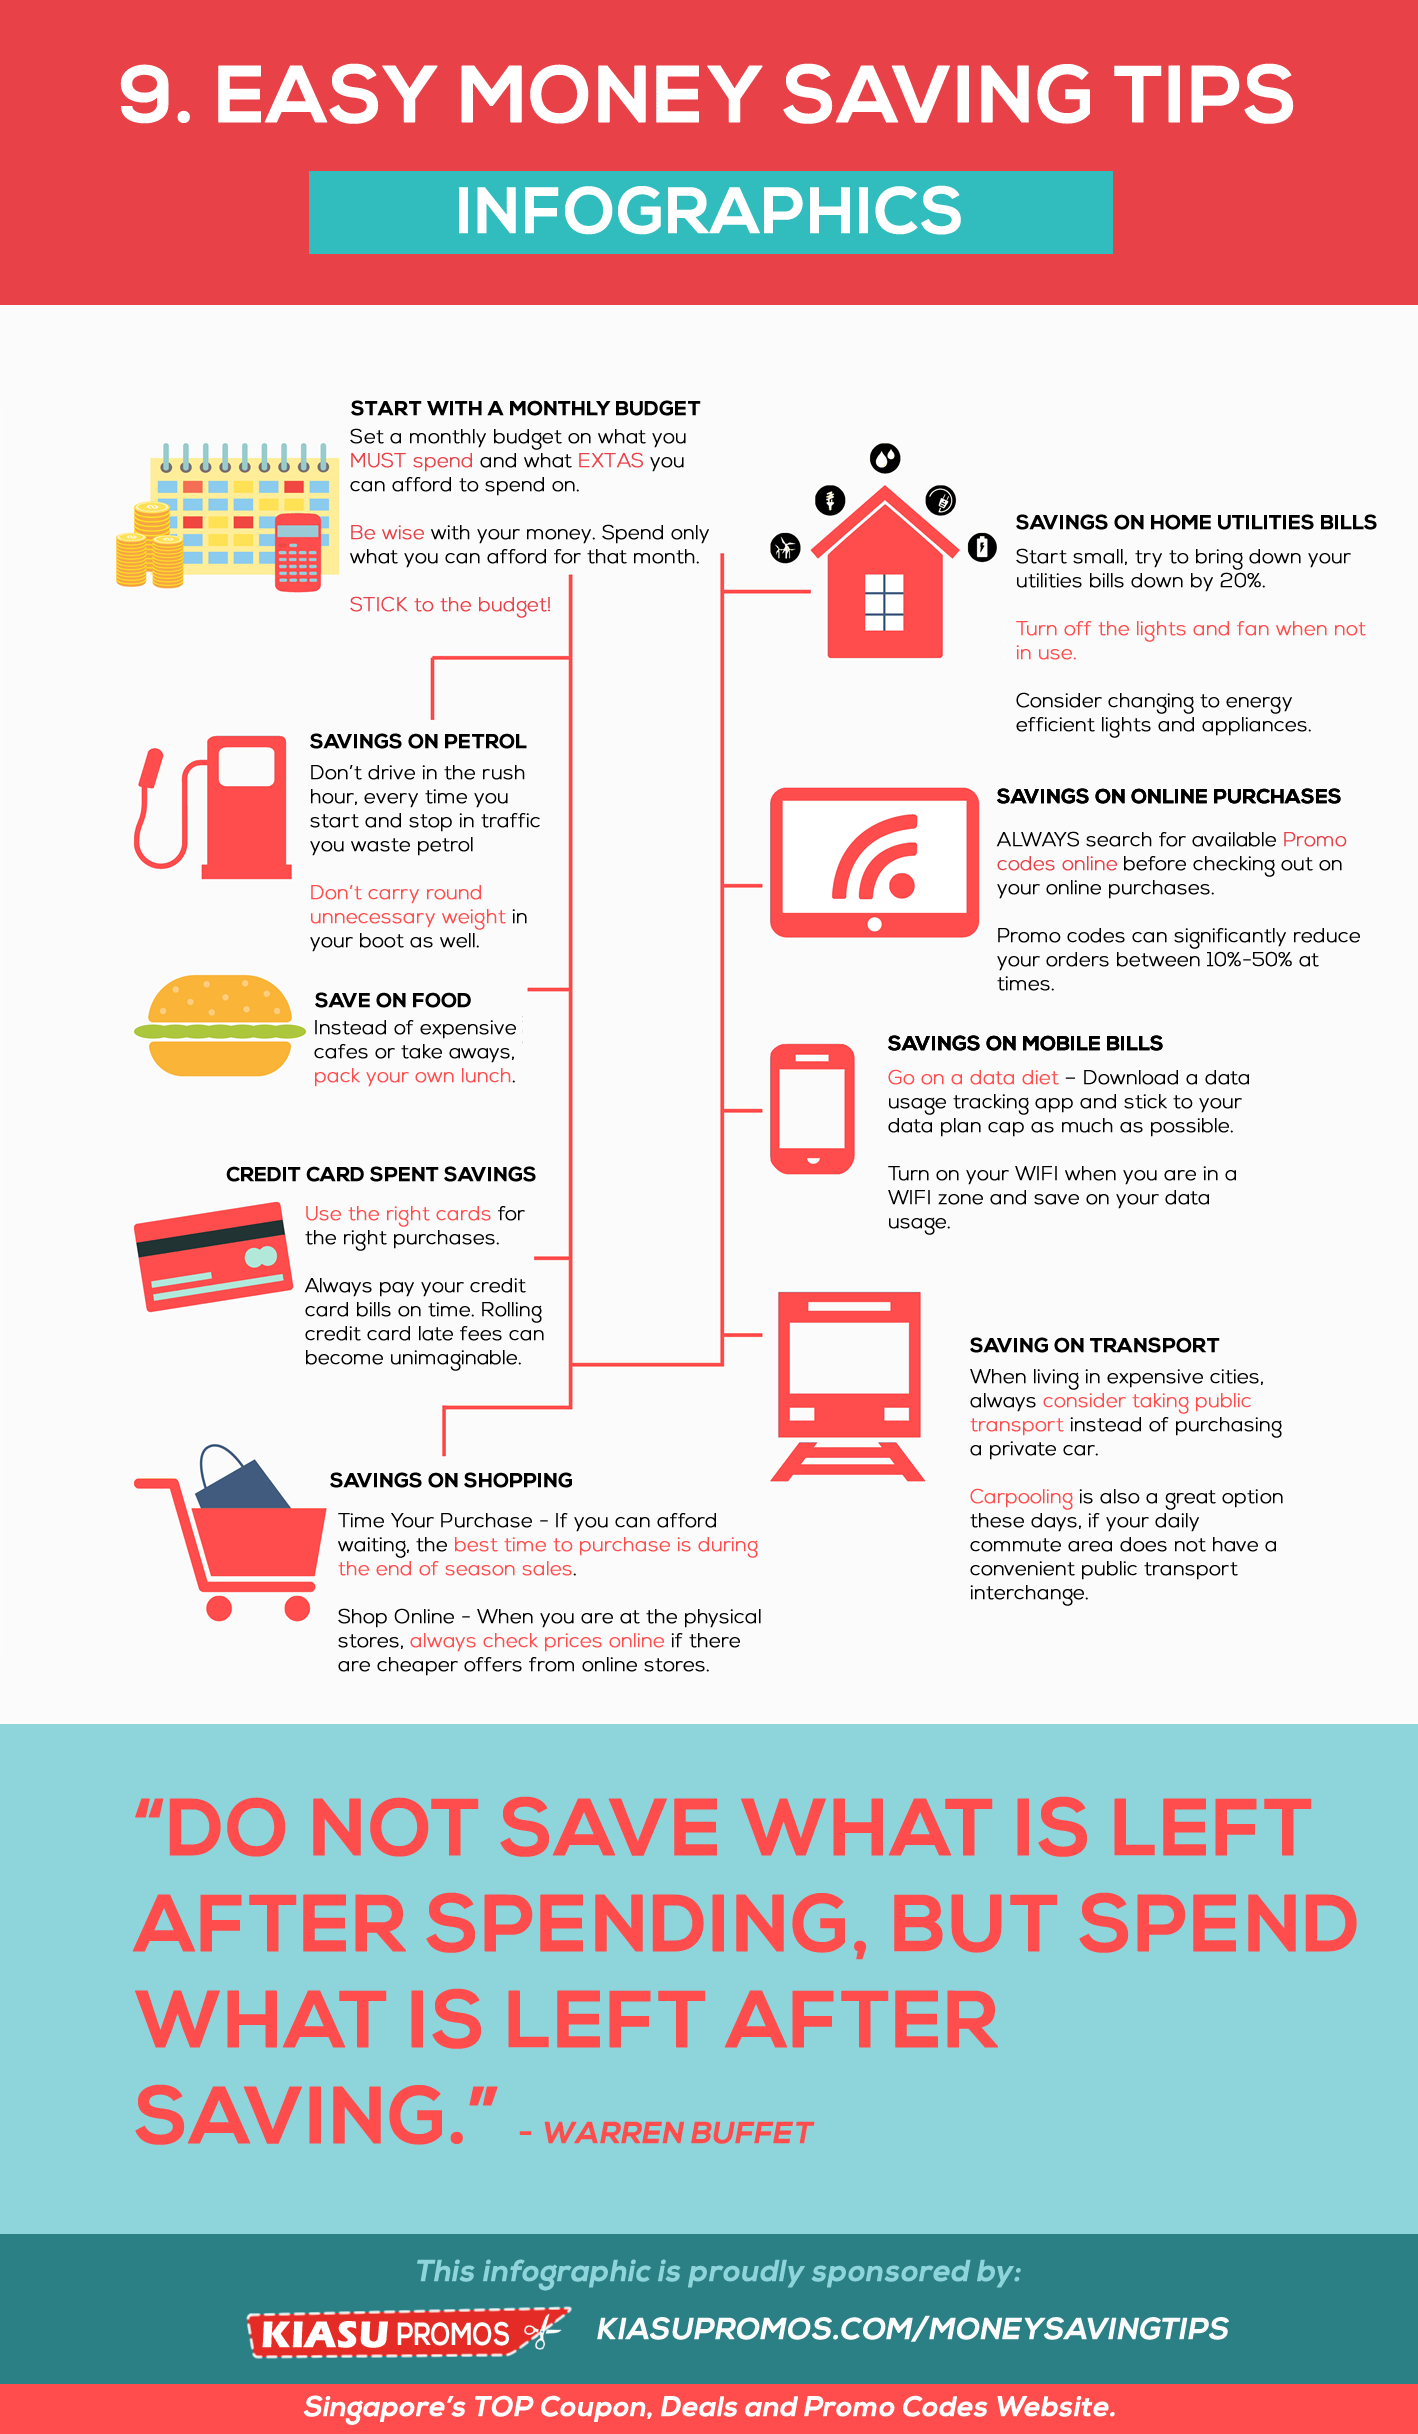 http://infographicjournal.com/wp-content/uploads/2016/09/money-saving-tips-infographics-11.png